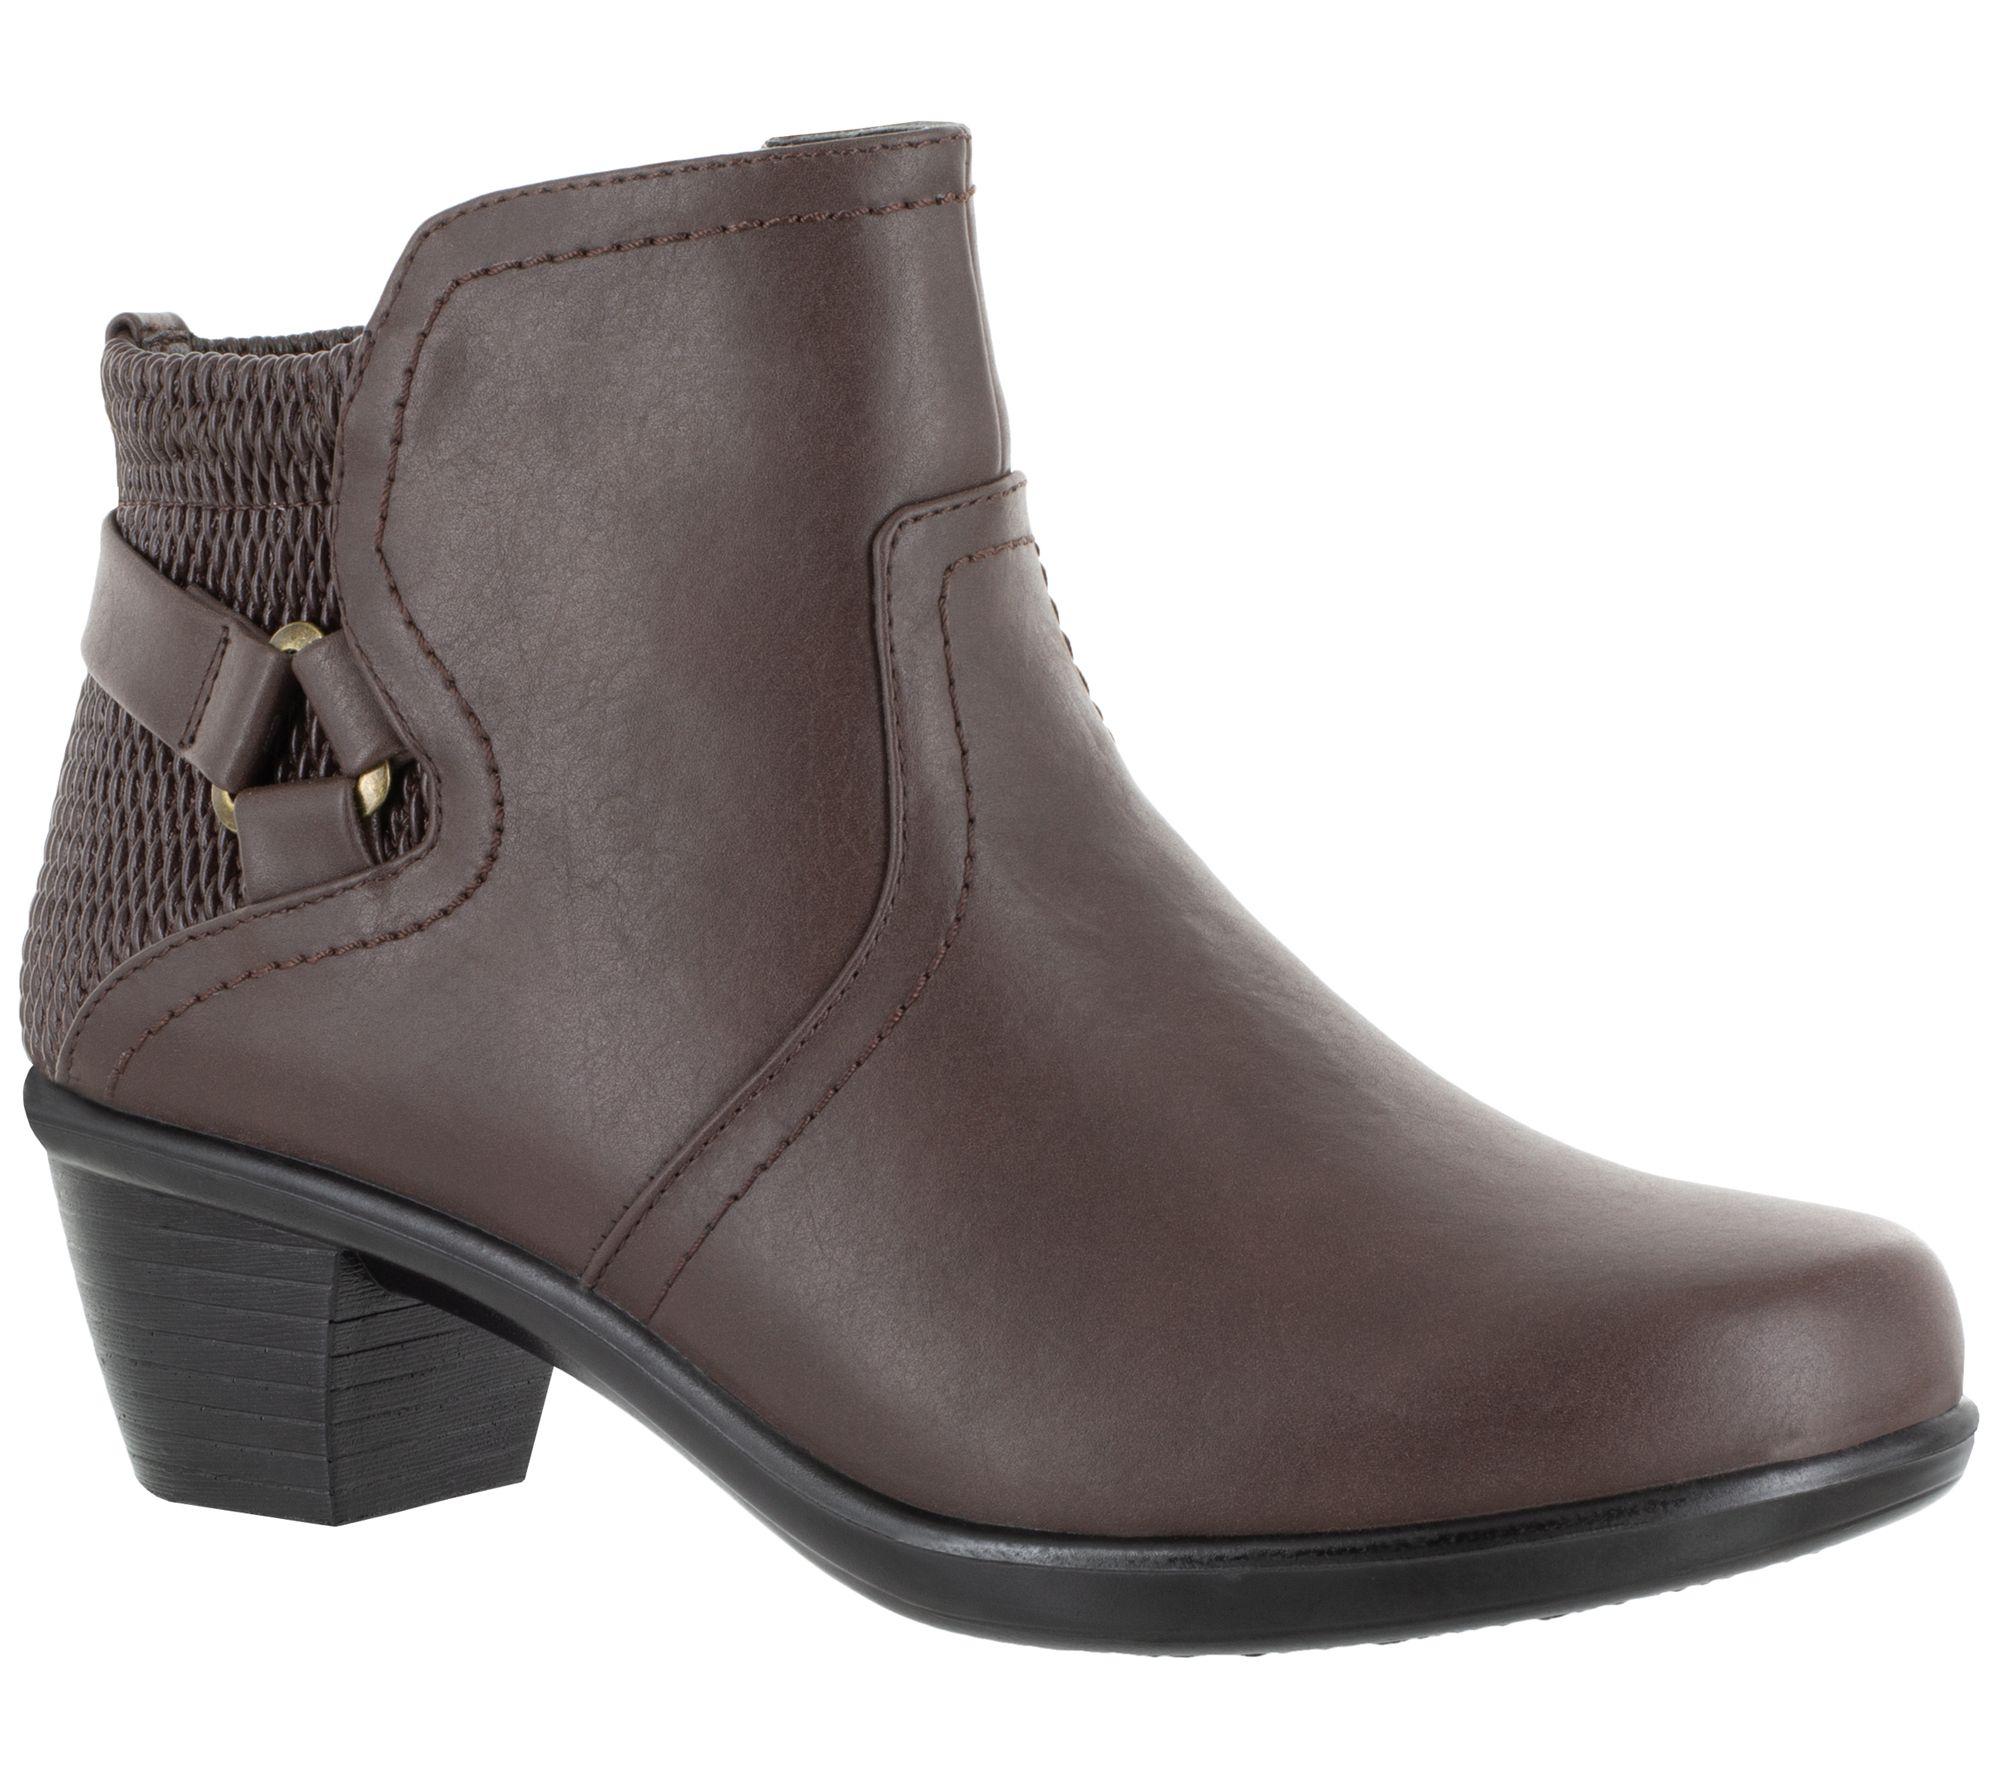 e97256d11e2c Easy Street Ankle Boots with Inside Zip -Dawnta - Page 1 — QVC.com